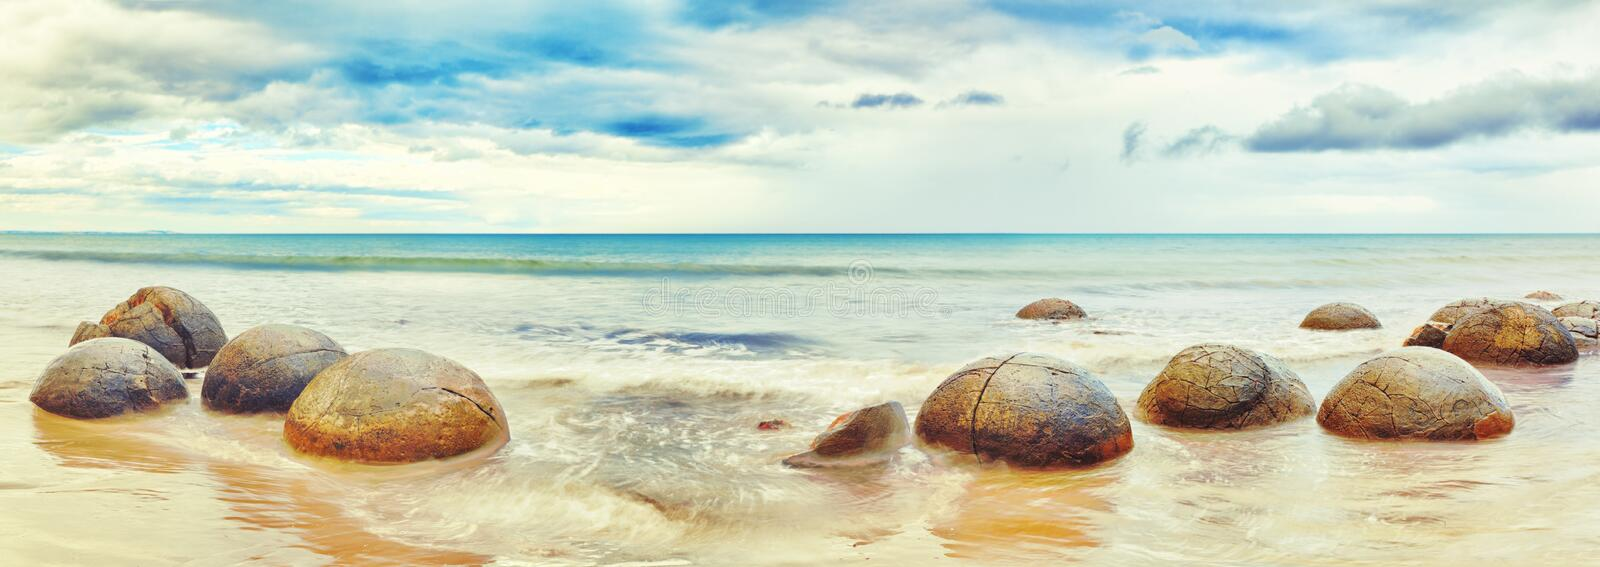 Moeraki Boulders. Panorama. New Zealand royalty free stock photo